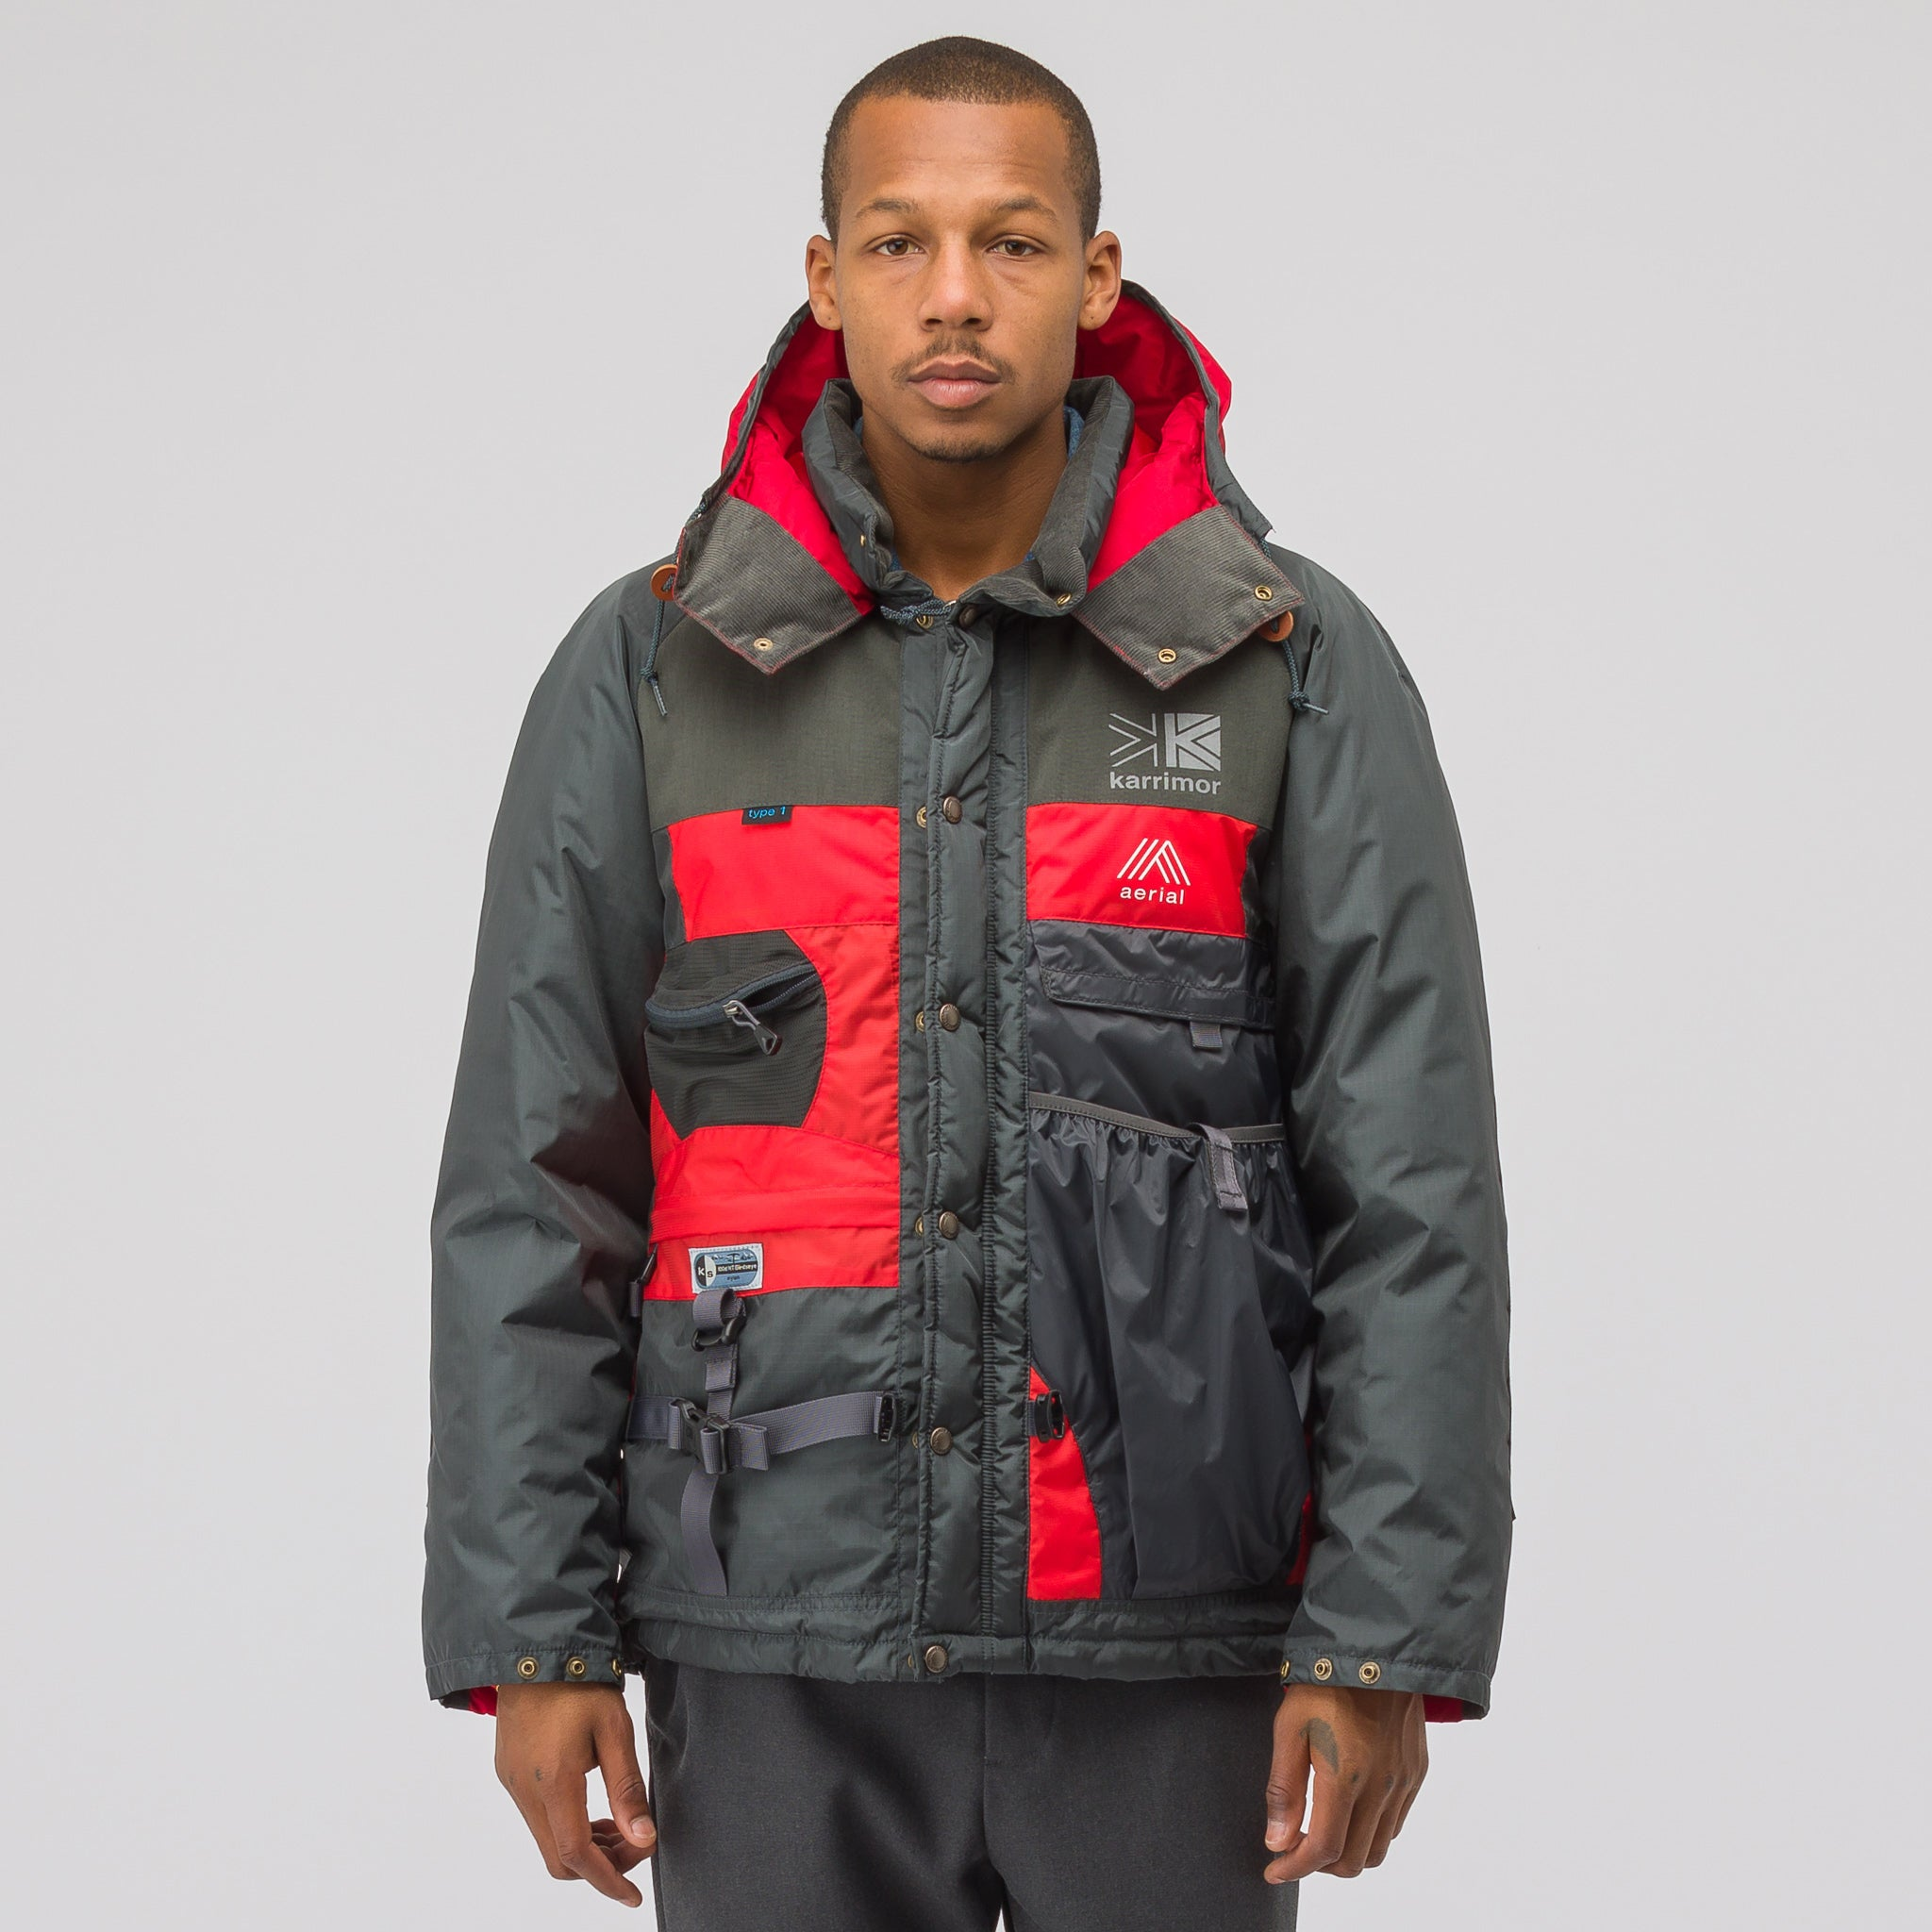 x Karrimor Jacket in Grey/Red